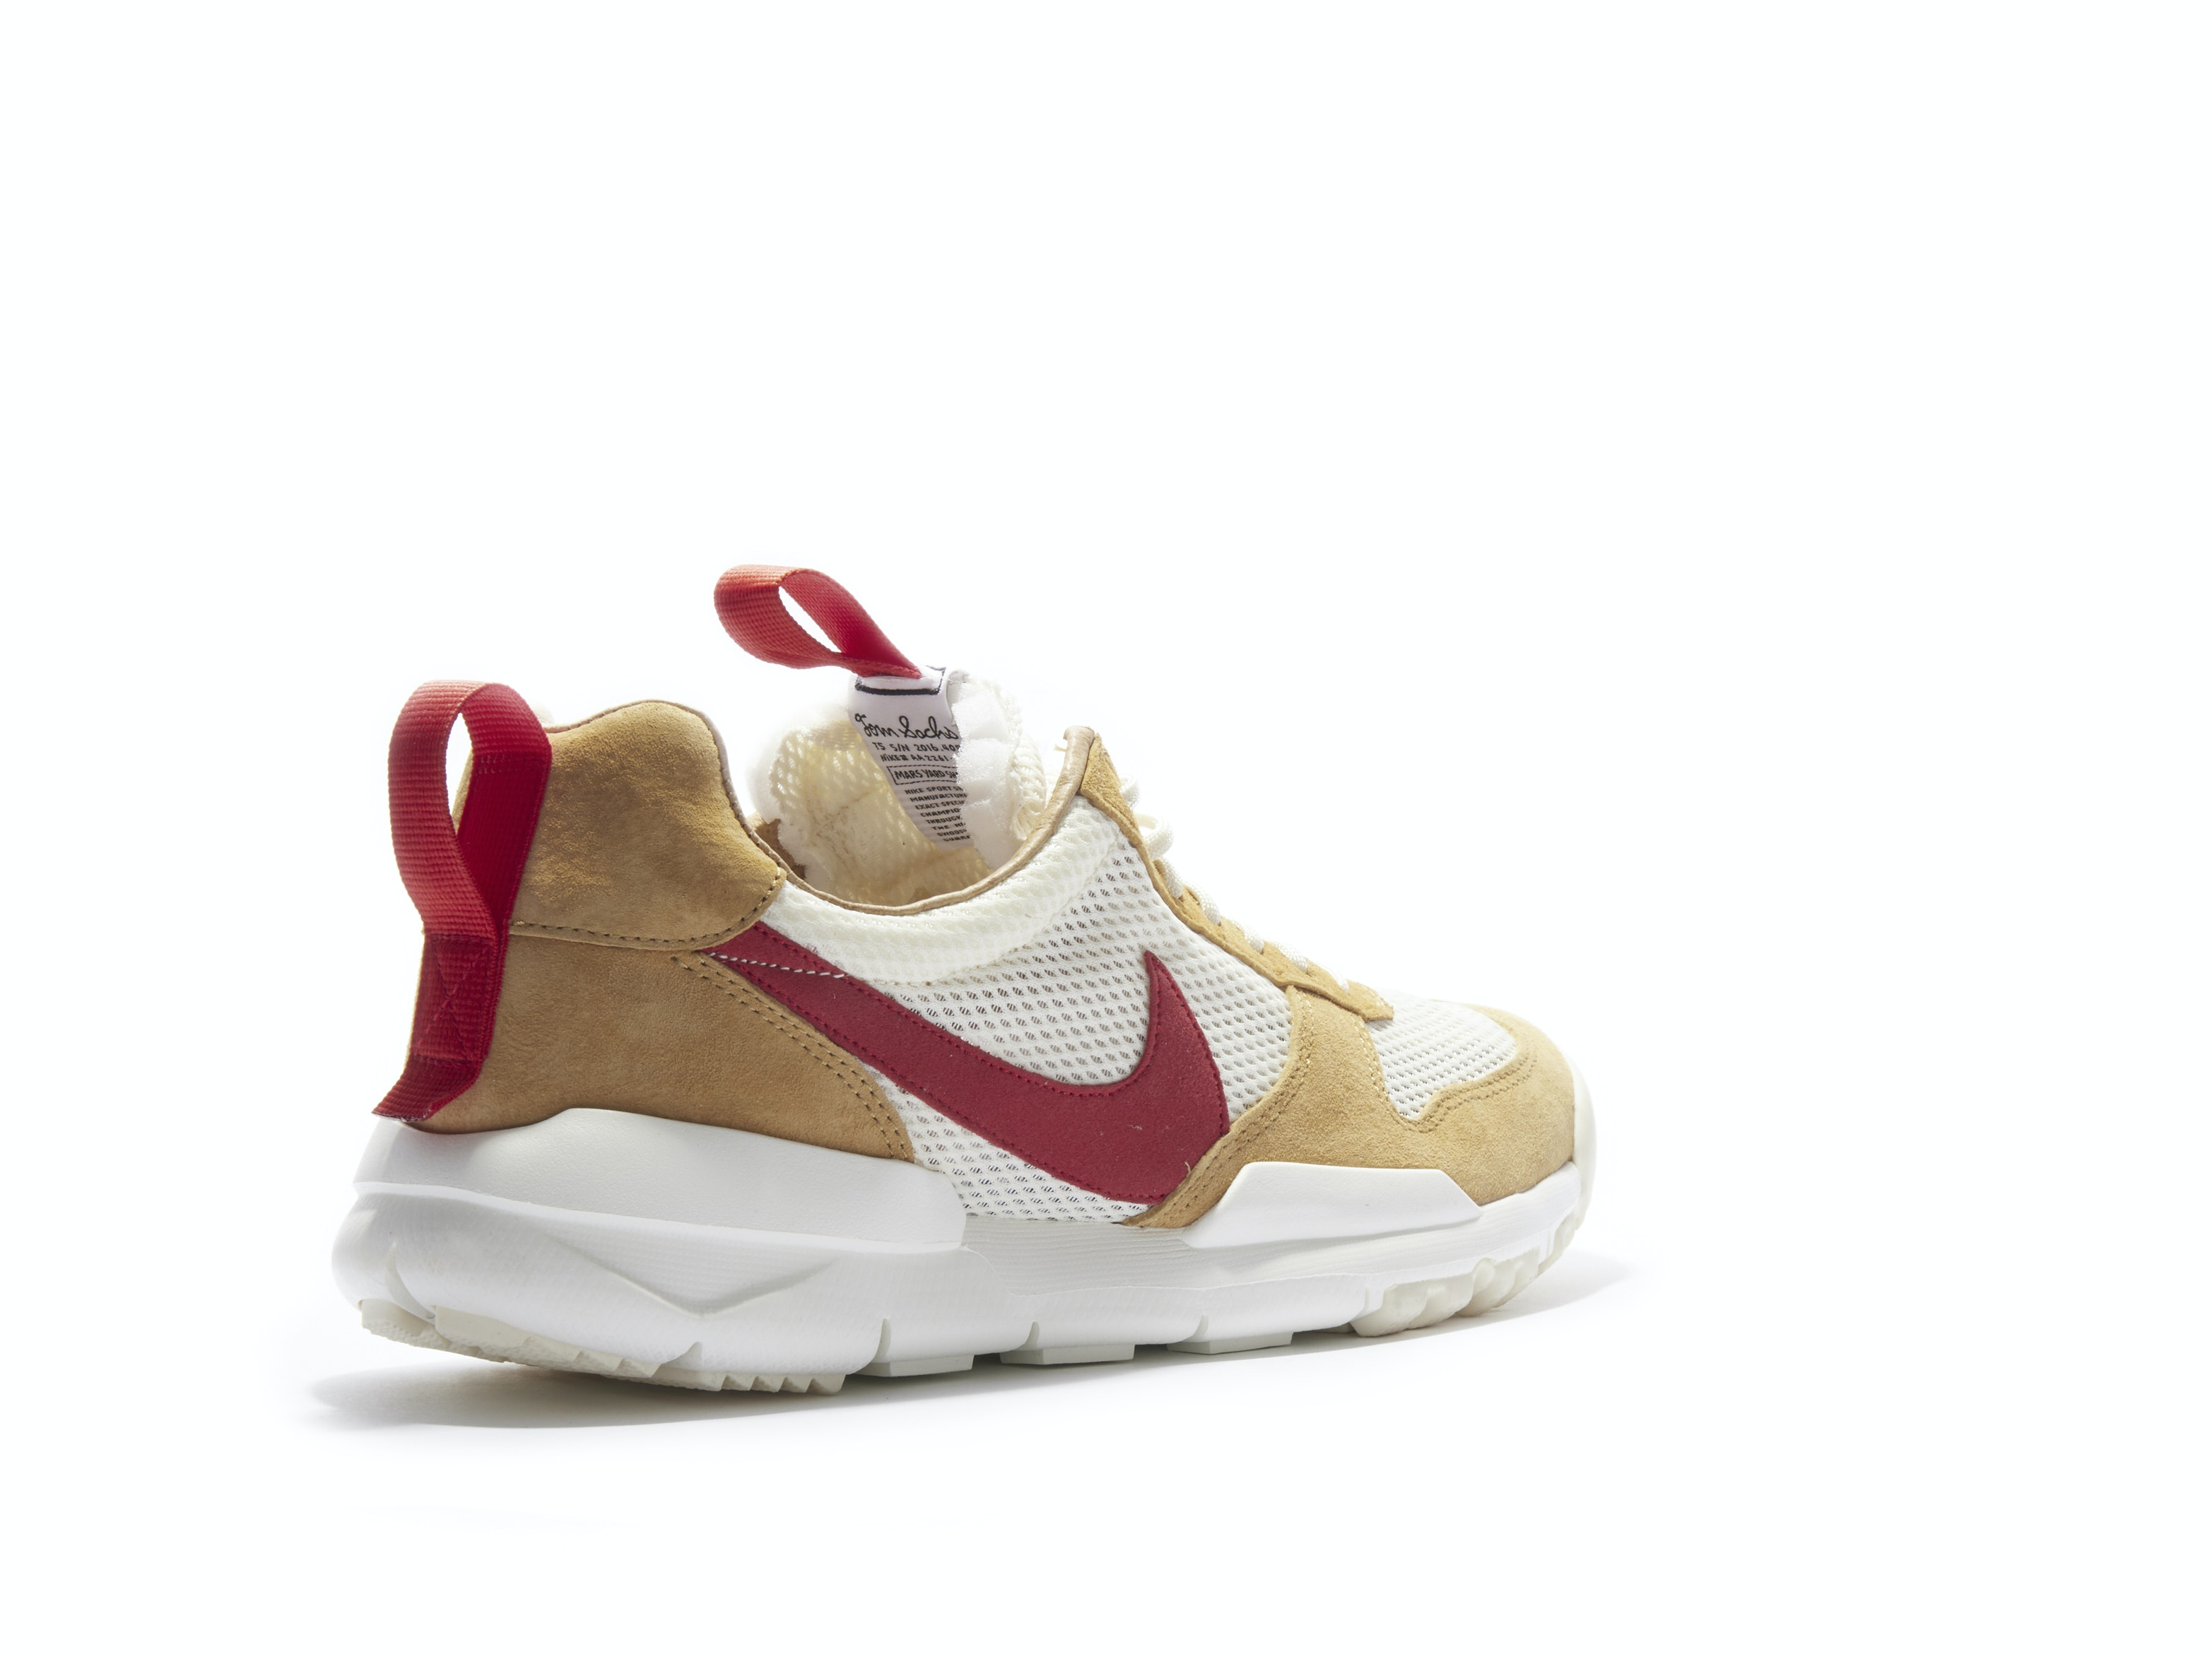 online store be698 021ed NikeCraft Mars Yard 2.0 x Tom Sachs. 100% AuthenticSold out! Nike    AA2261-100